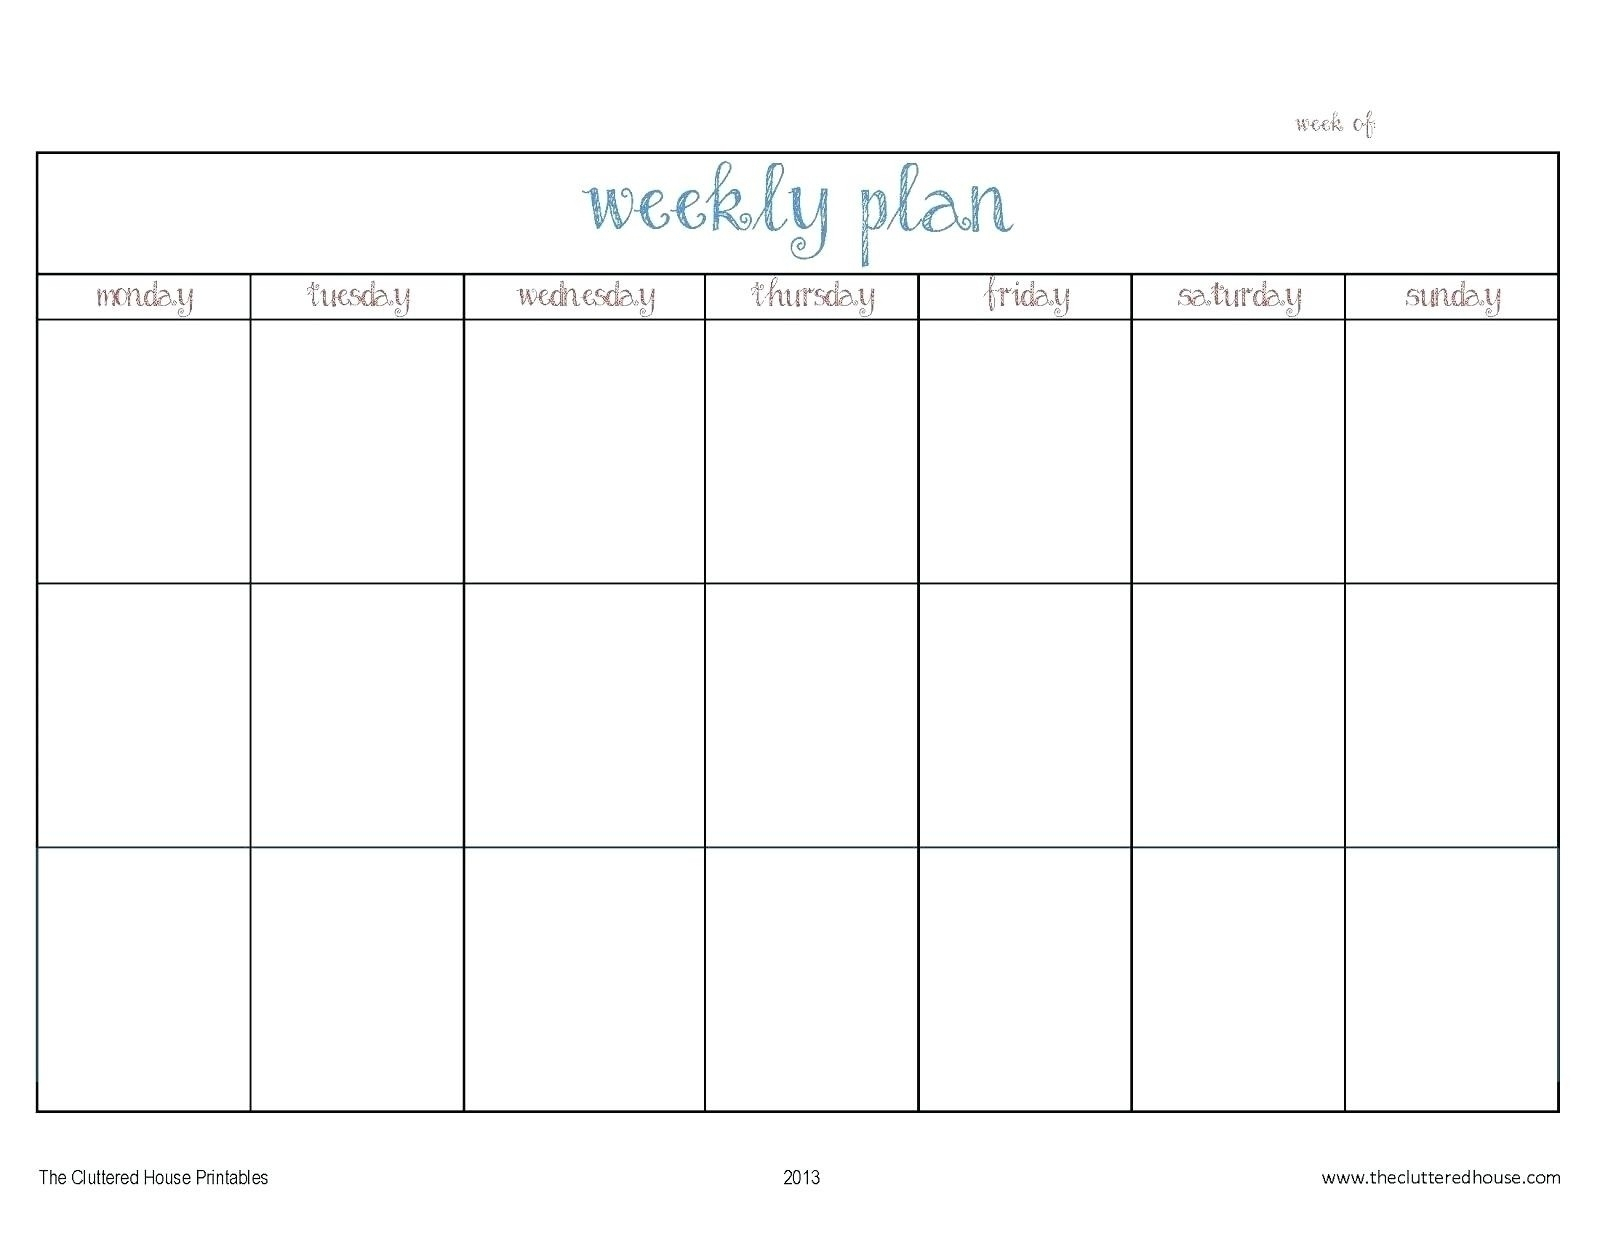 Monday Through Friday Calender Blank Template Printable throughout Monday Through Friday Calendar